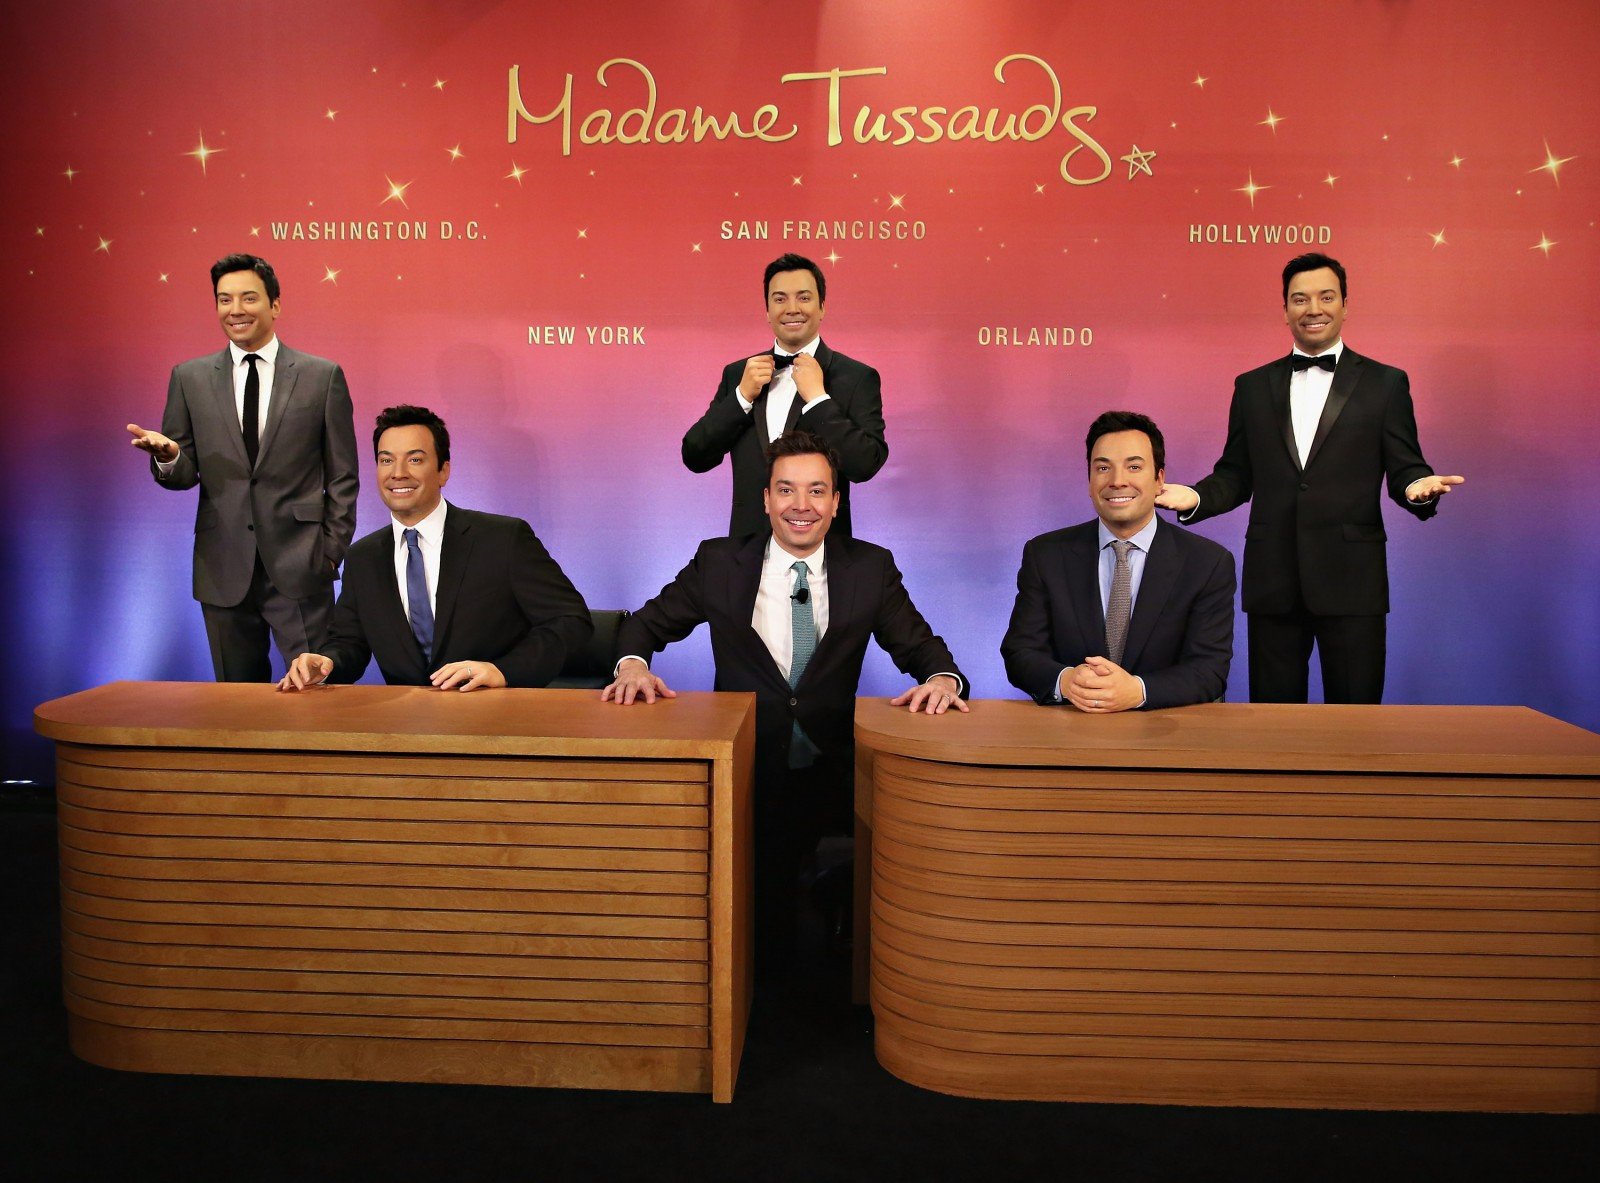 Jimmy Fallon meets his brand new figure for Madame Tussauds Orlando. Photos courtesy of Madame Tussauds